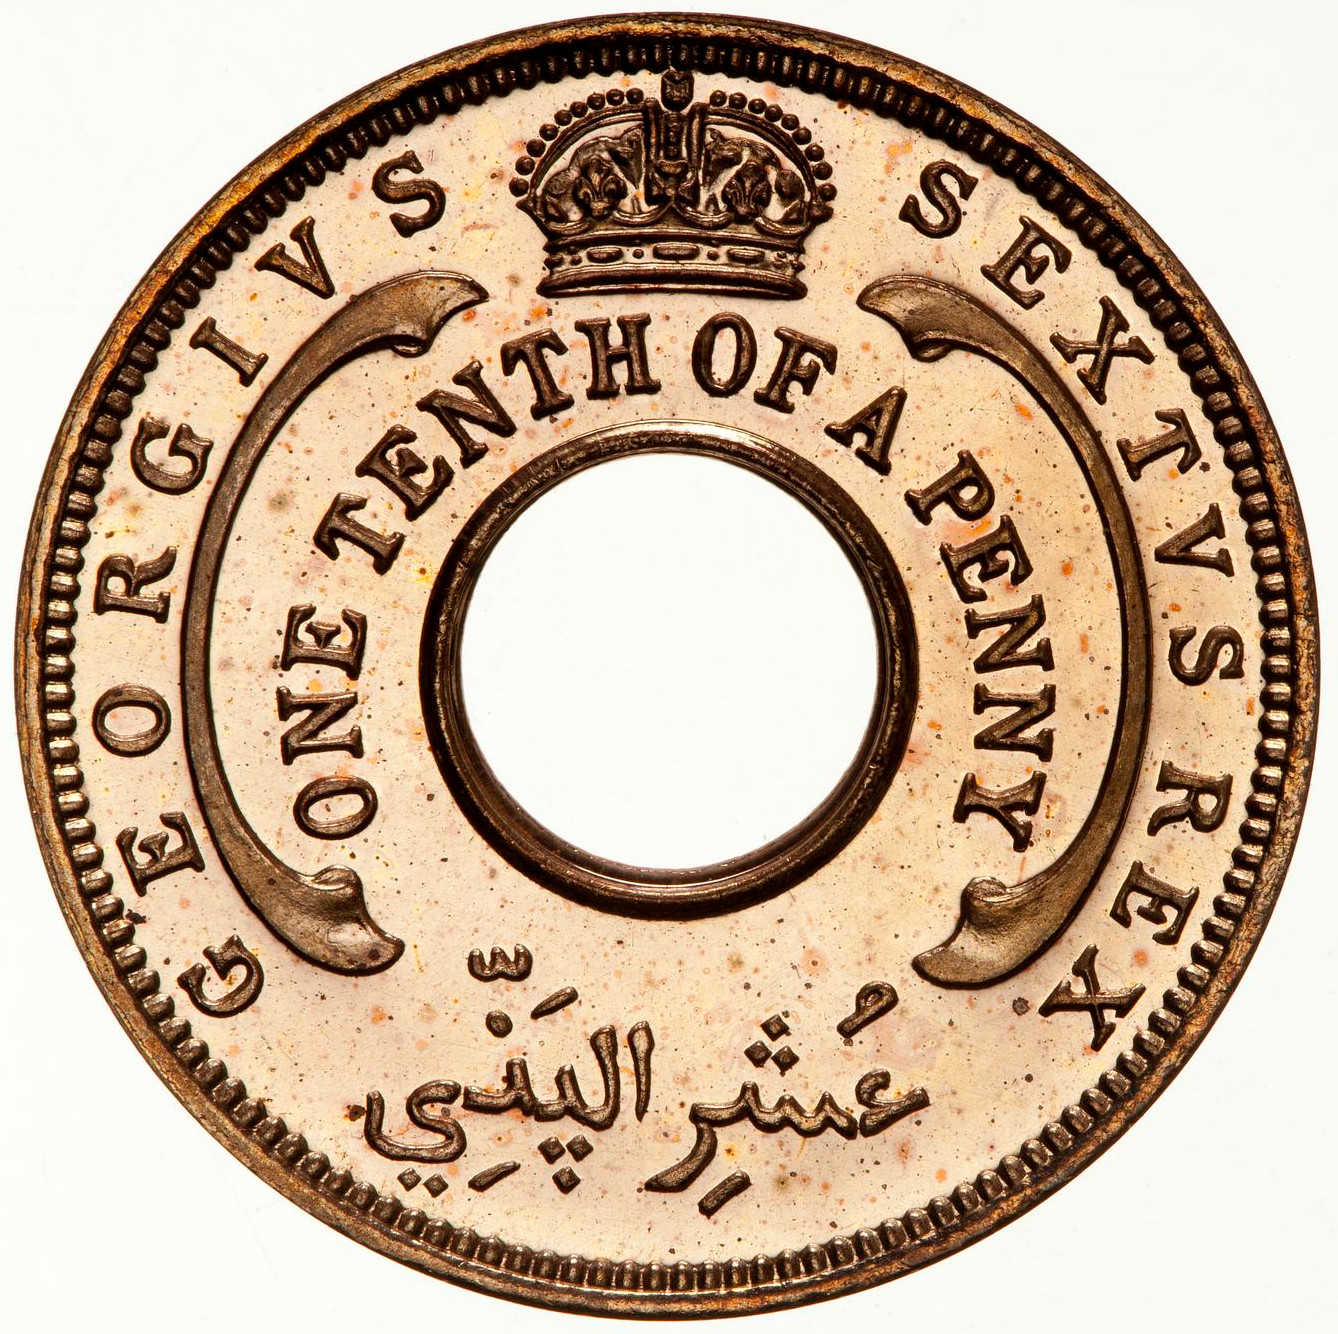 One-tenth Penny 1952: Photo Proof Coin - 1/10 Penny, British West Africa, 1952